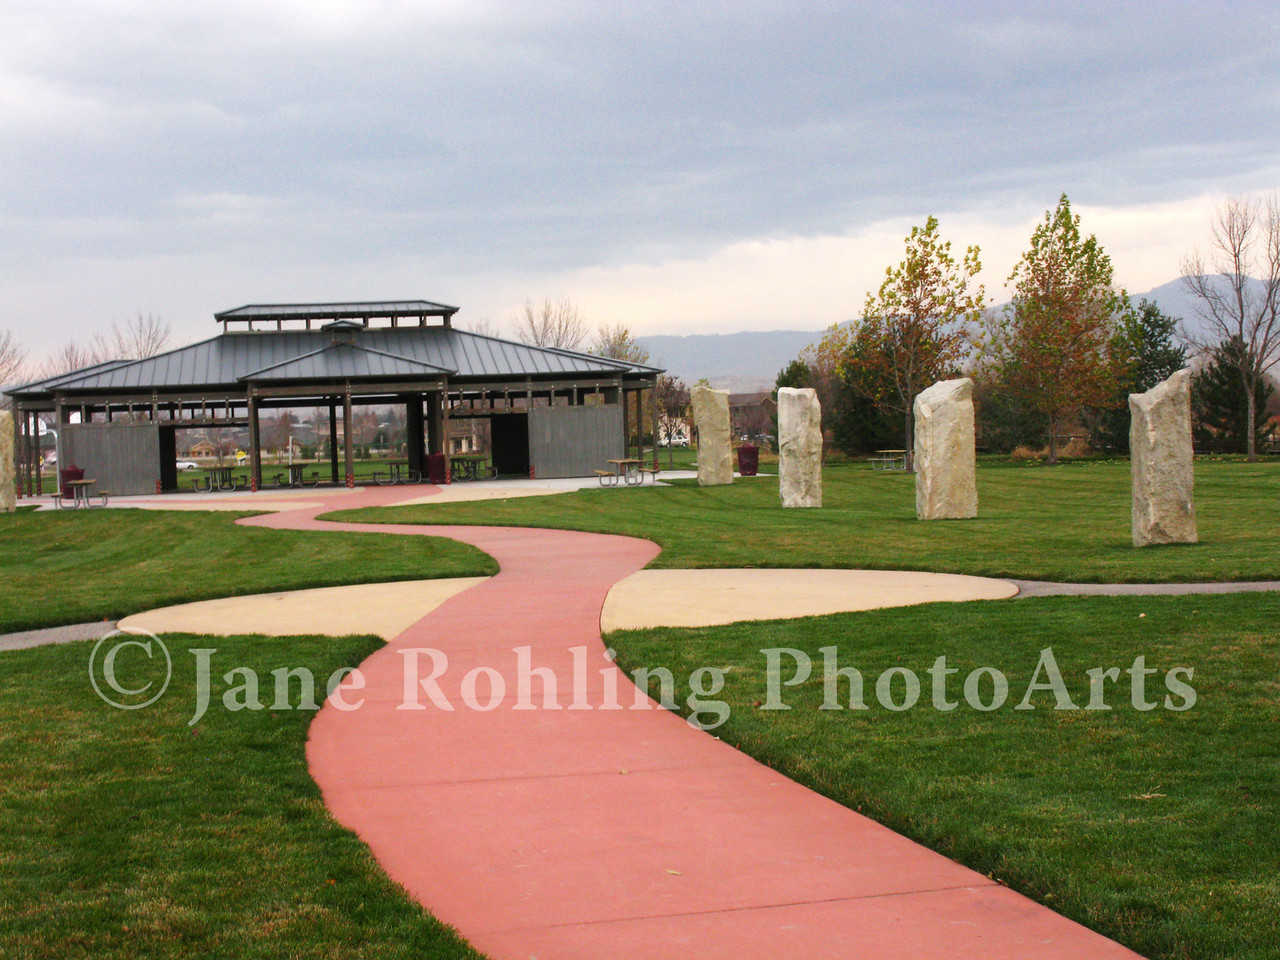 Stone pillars and a colorful walkway lead from the greenbelt on the Boise River to the picnic shelter in Merrill Park, Eagle, Idaho.